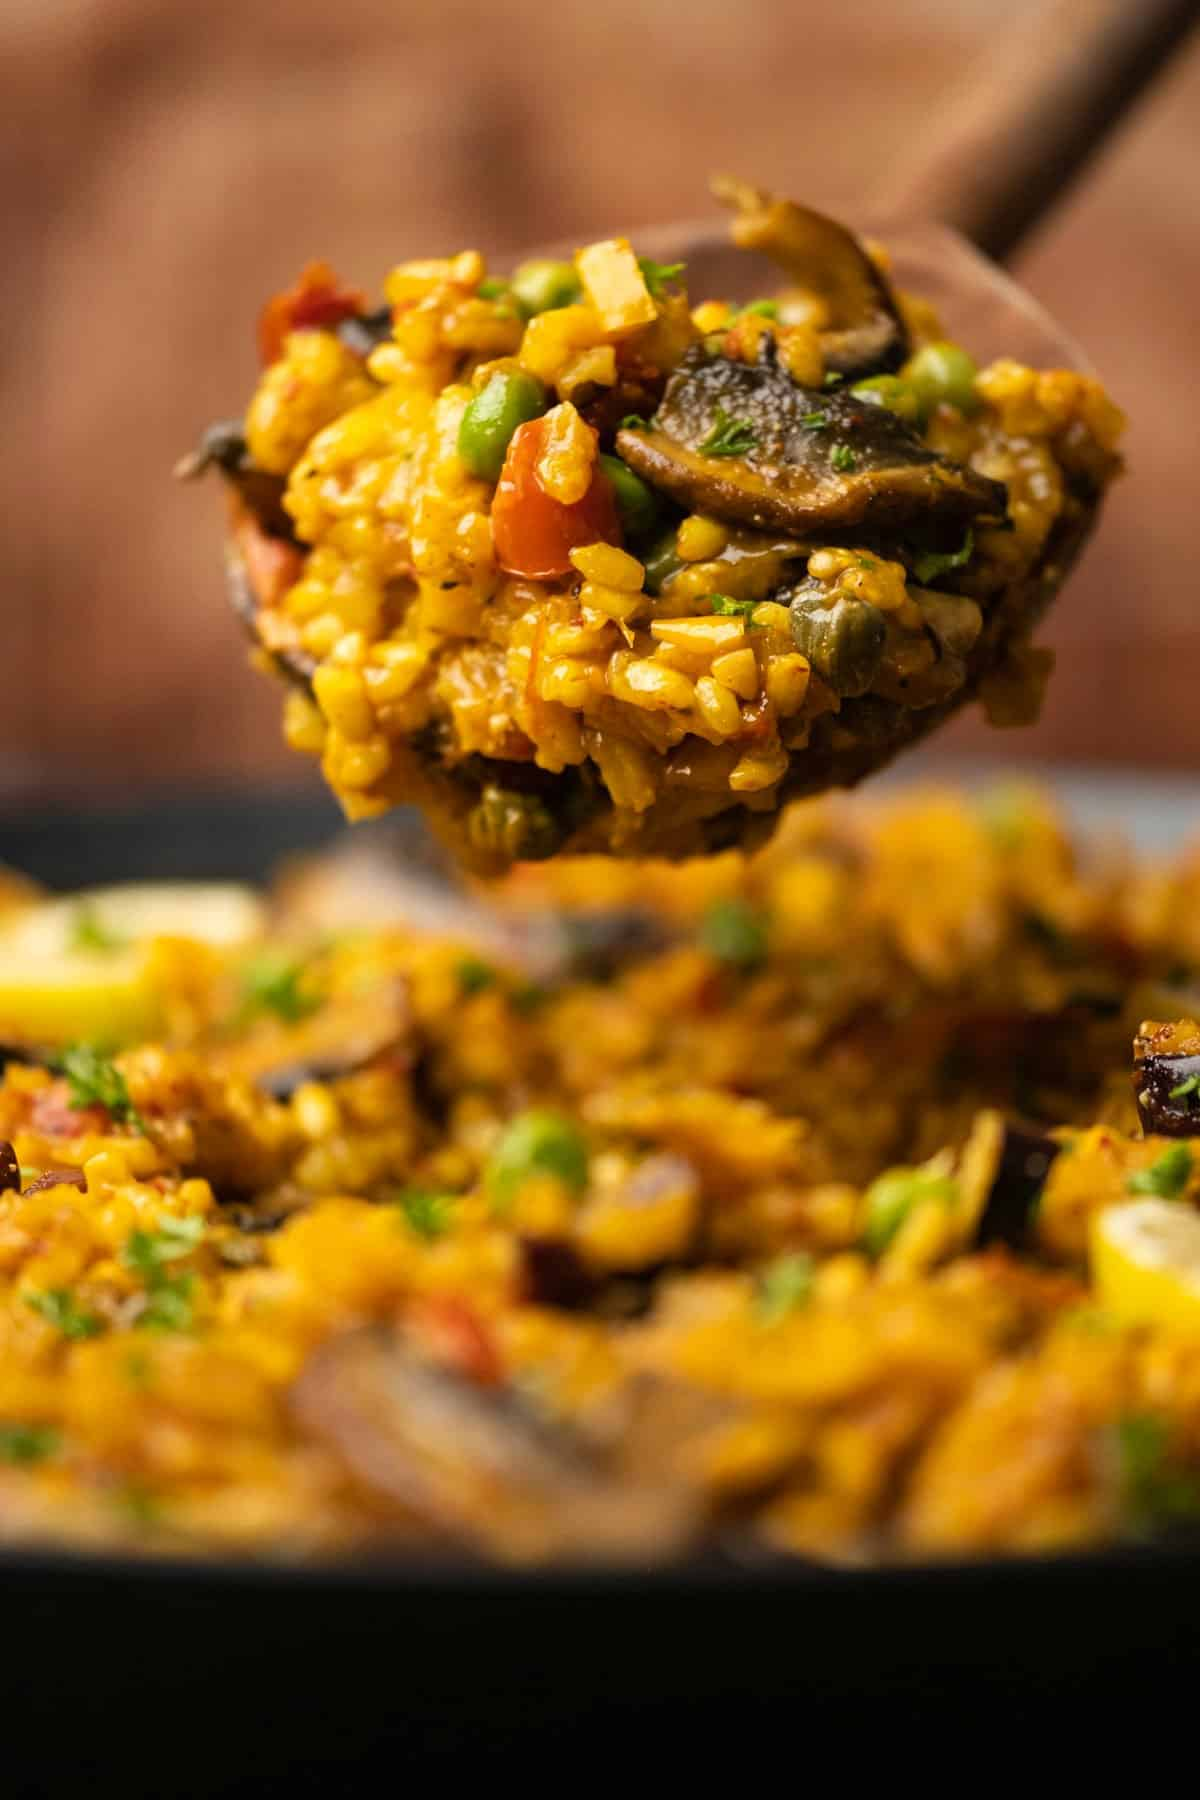 A serving spoon full of vegetable paella.